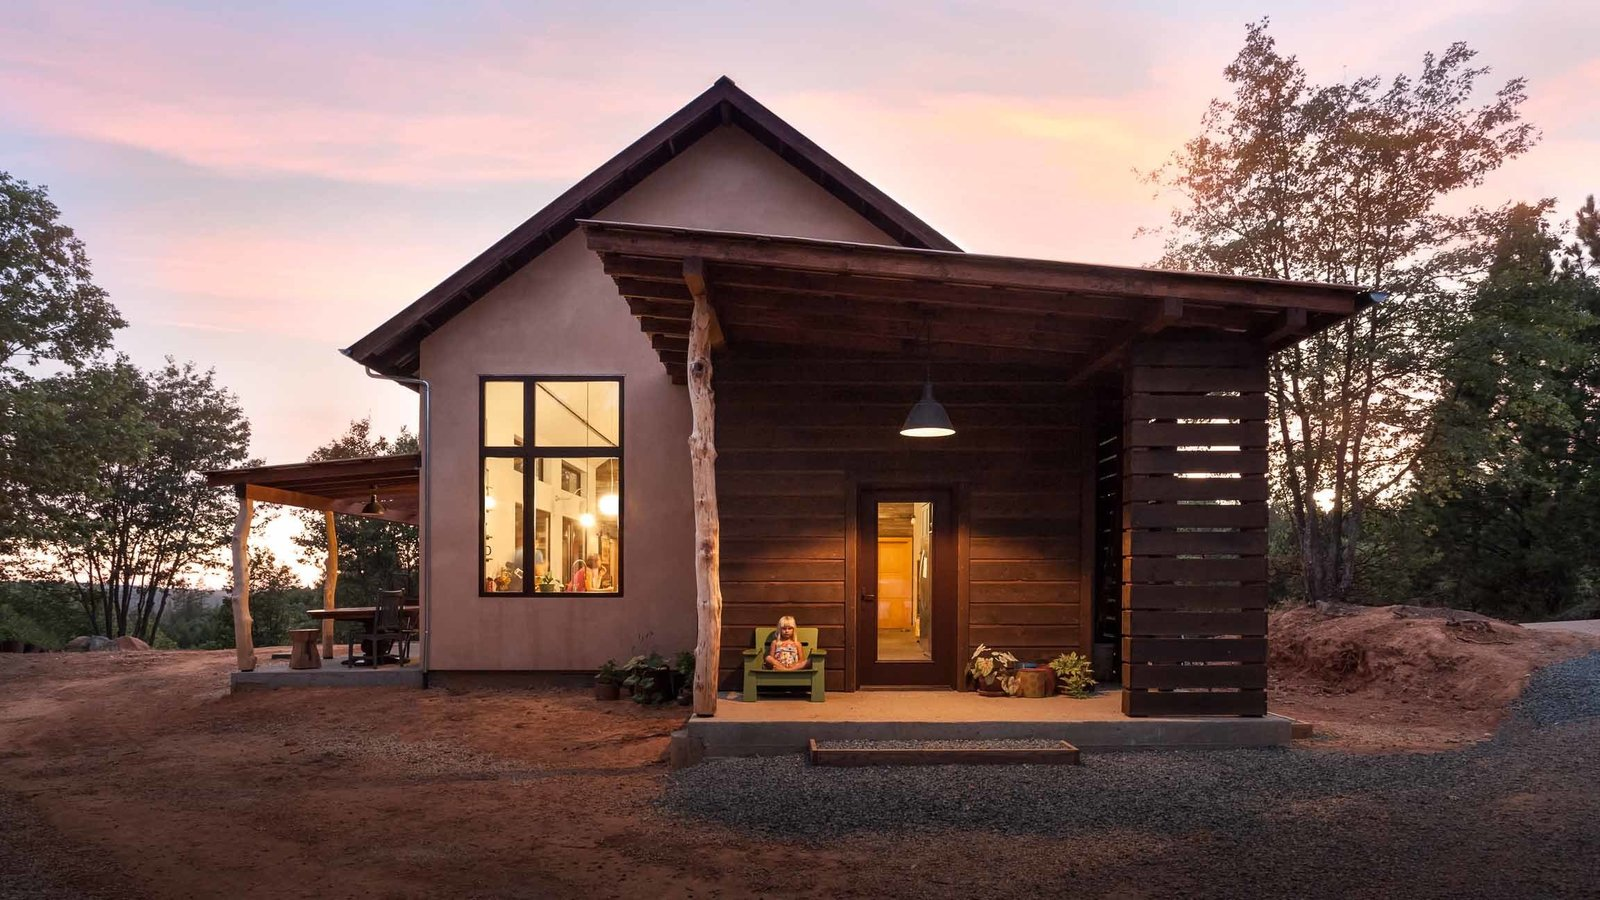 Exterior, House Building Type, and Cabin Building Type A Seattle family tasked Atmosphere Design Build with creating a sustainable dwelling in Nevada City, California, the matriarch's hometown and a historic mining community. The firm's material-driven approach channels the pioneer spirit of the gold rush, without compromising comfort or high-efficiency standards.  Don't Let Its Rustic Charm Fool You, This Net-Zero Home Plays for Team Modern by Luke Hopping